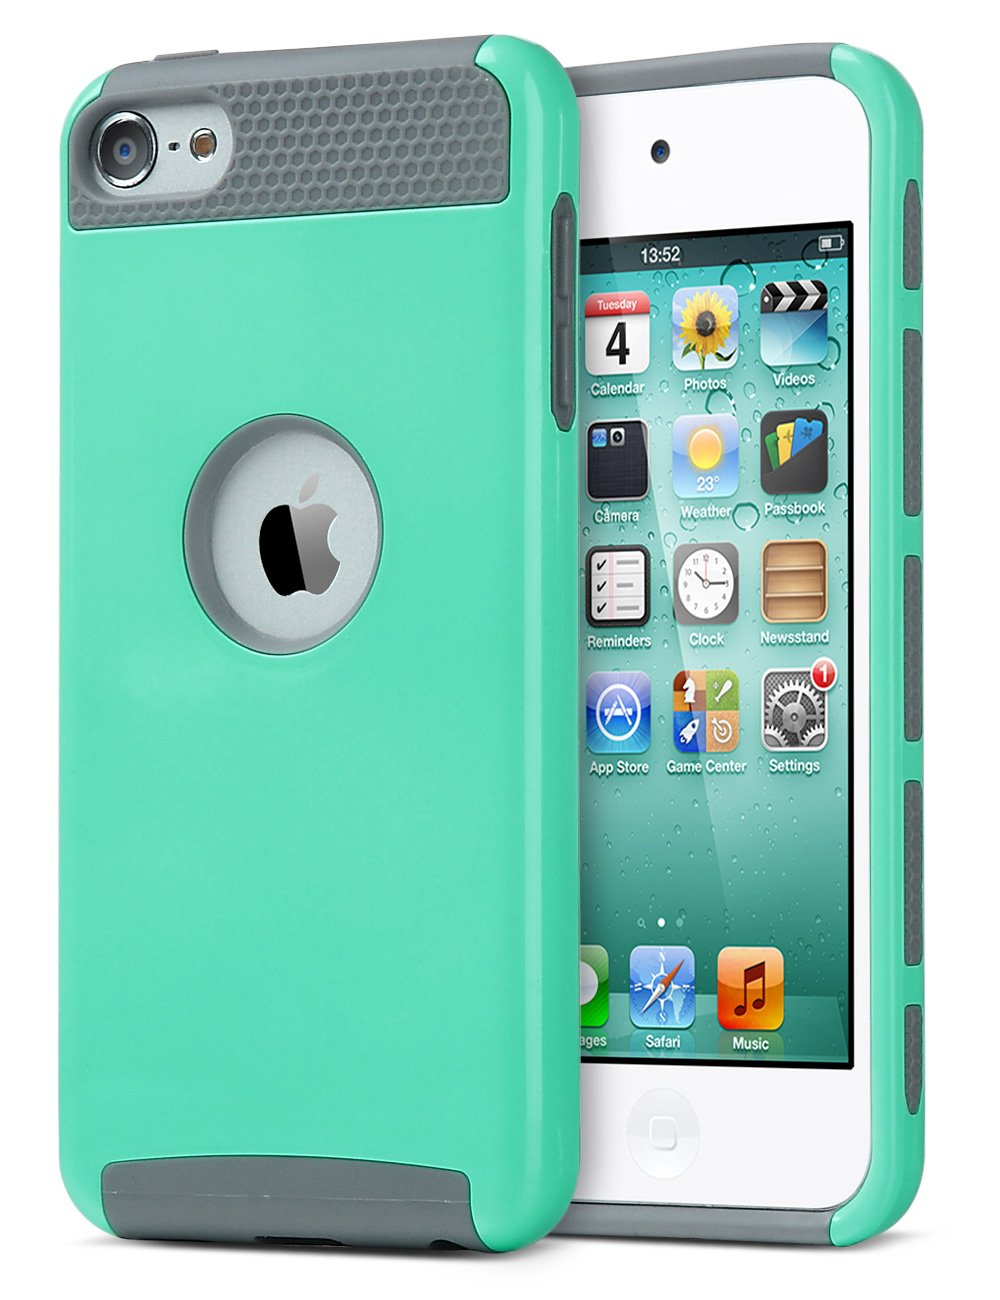 iPod Touch 5/6th Generation Case,ULAK Dual Layer Slim Protective Hybrid iPod Touch Case Hard PC Cover for Apple iPod touch 5 6th Generation (Aqua Mint/Grey)